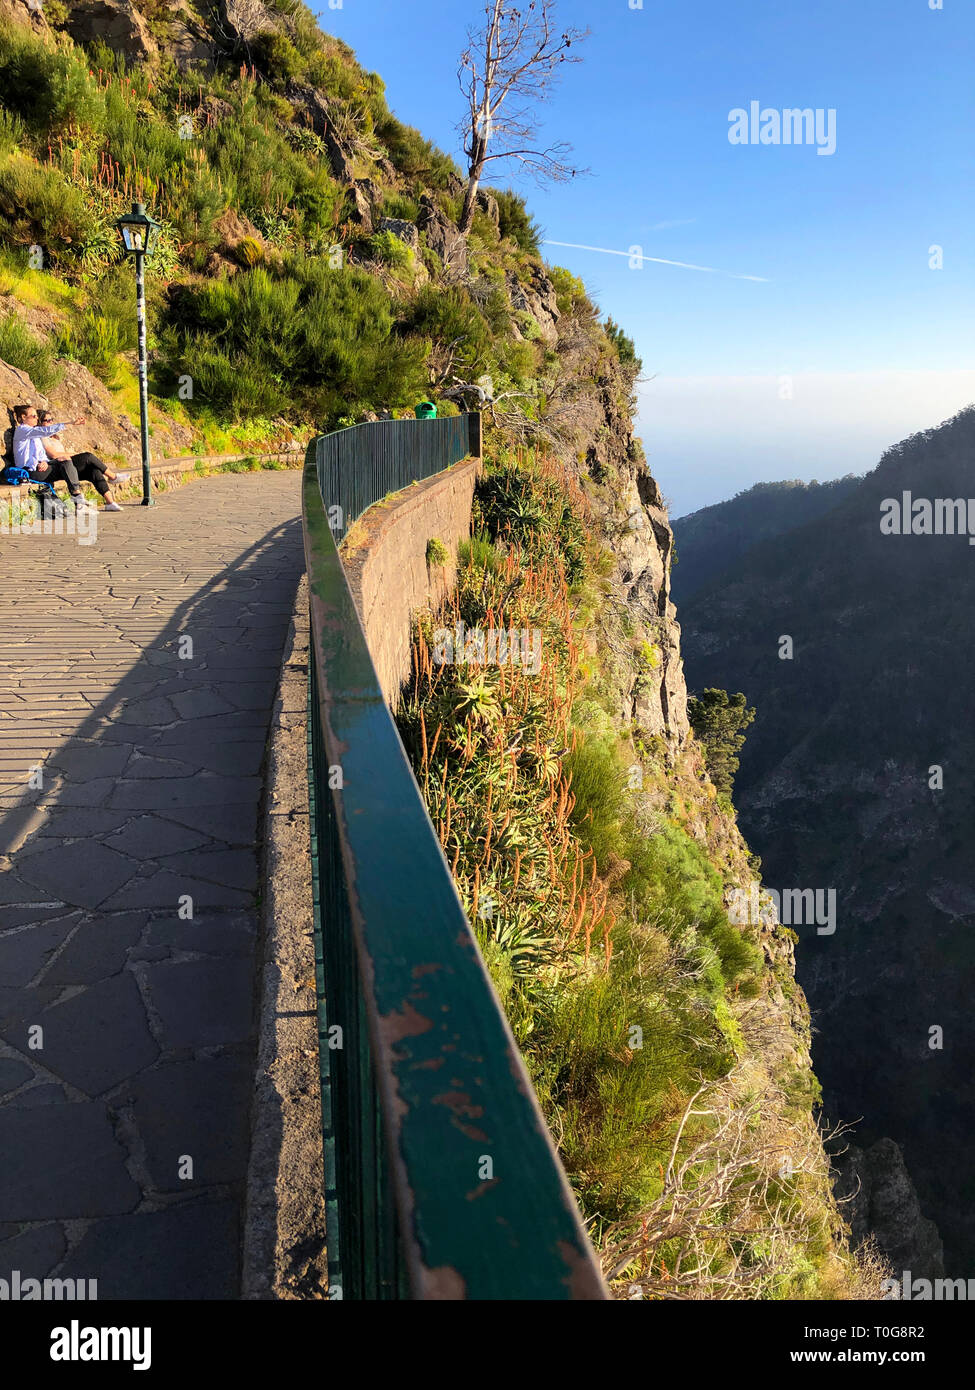 Tourists on a bench at the lookout point, admiring the dramatic mountain view in late afternoon sunlight, Miradouro da Eira do Serrado, Madeira / Port - Stock Image